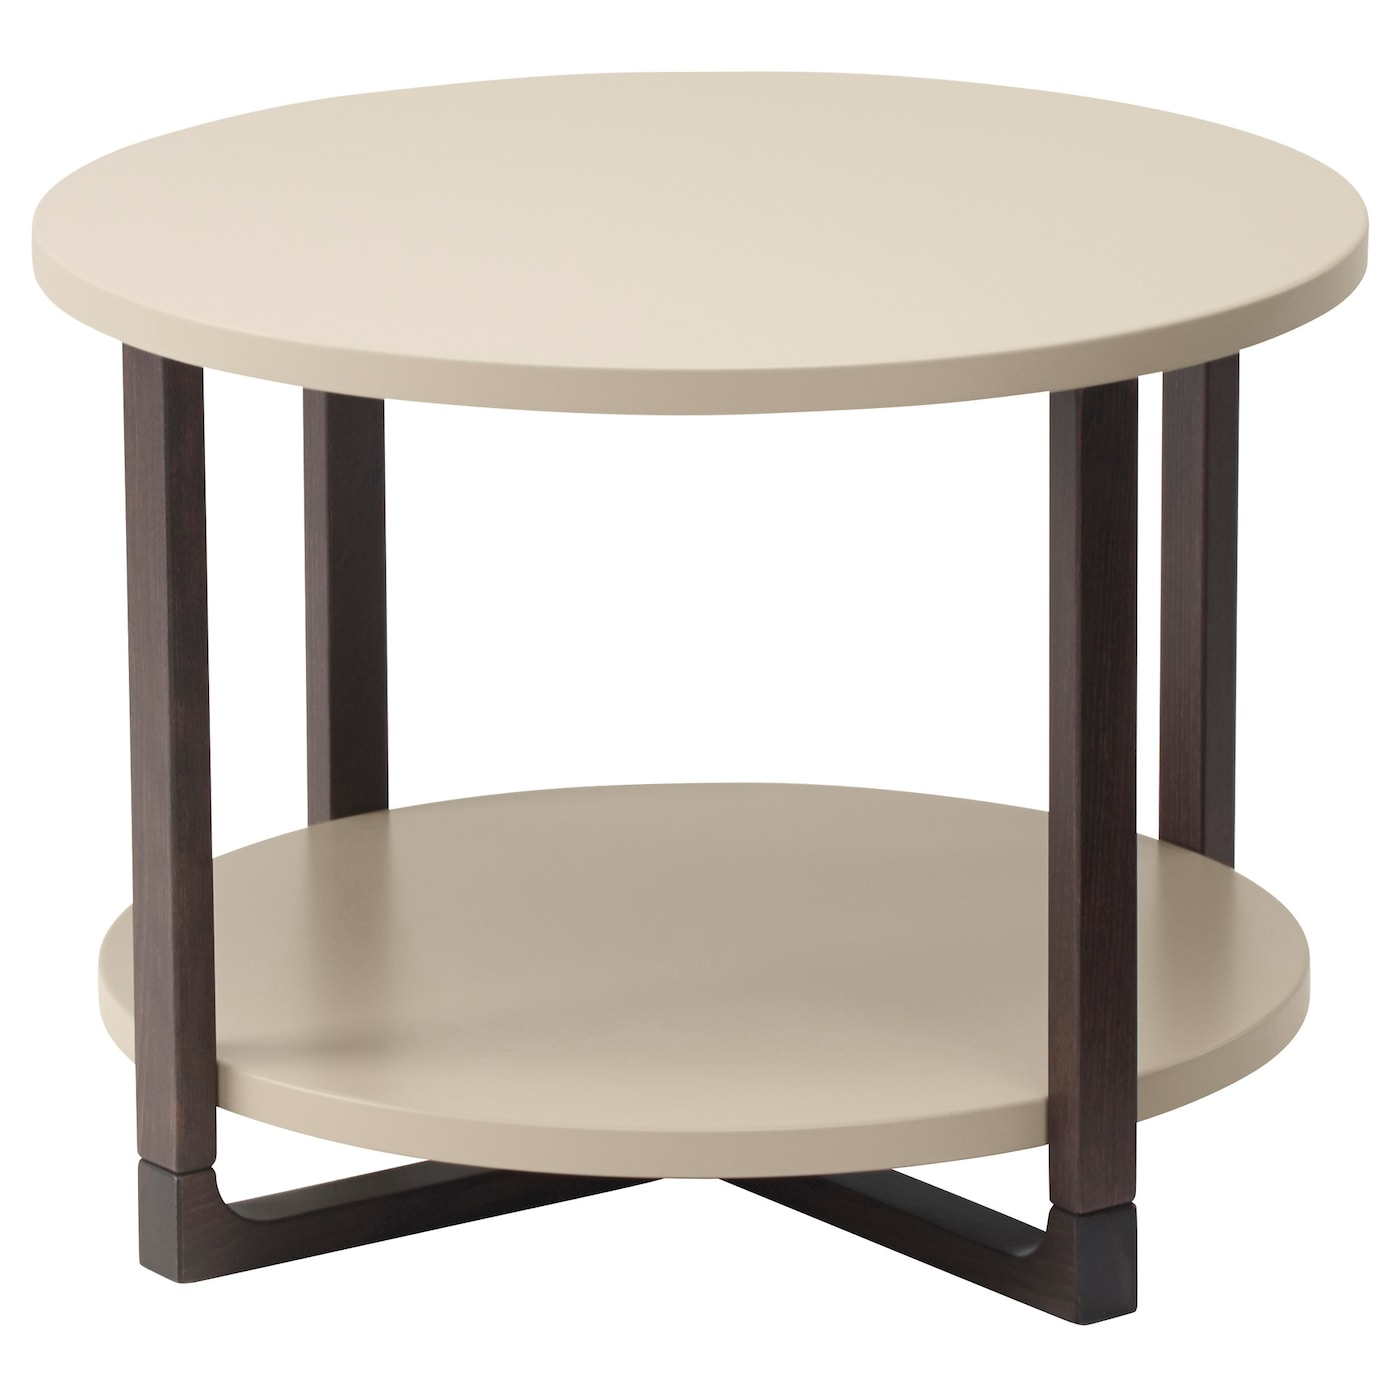 Rissna side table beige 60 cm ikea Ikea coffee tables and end tables